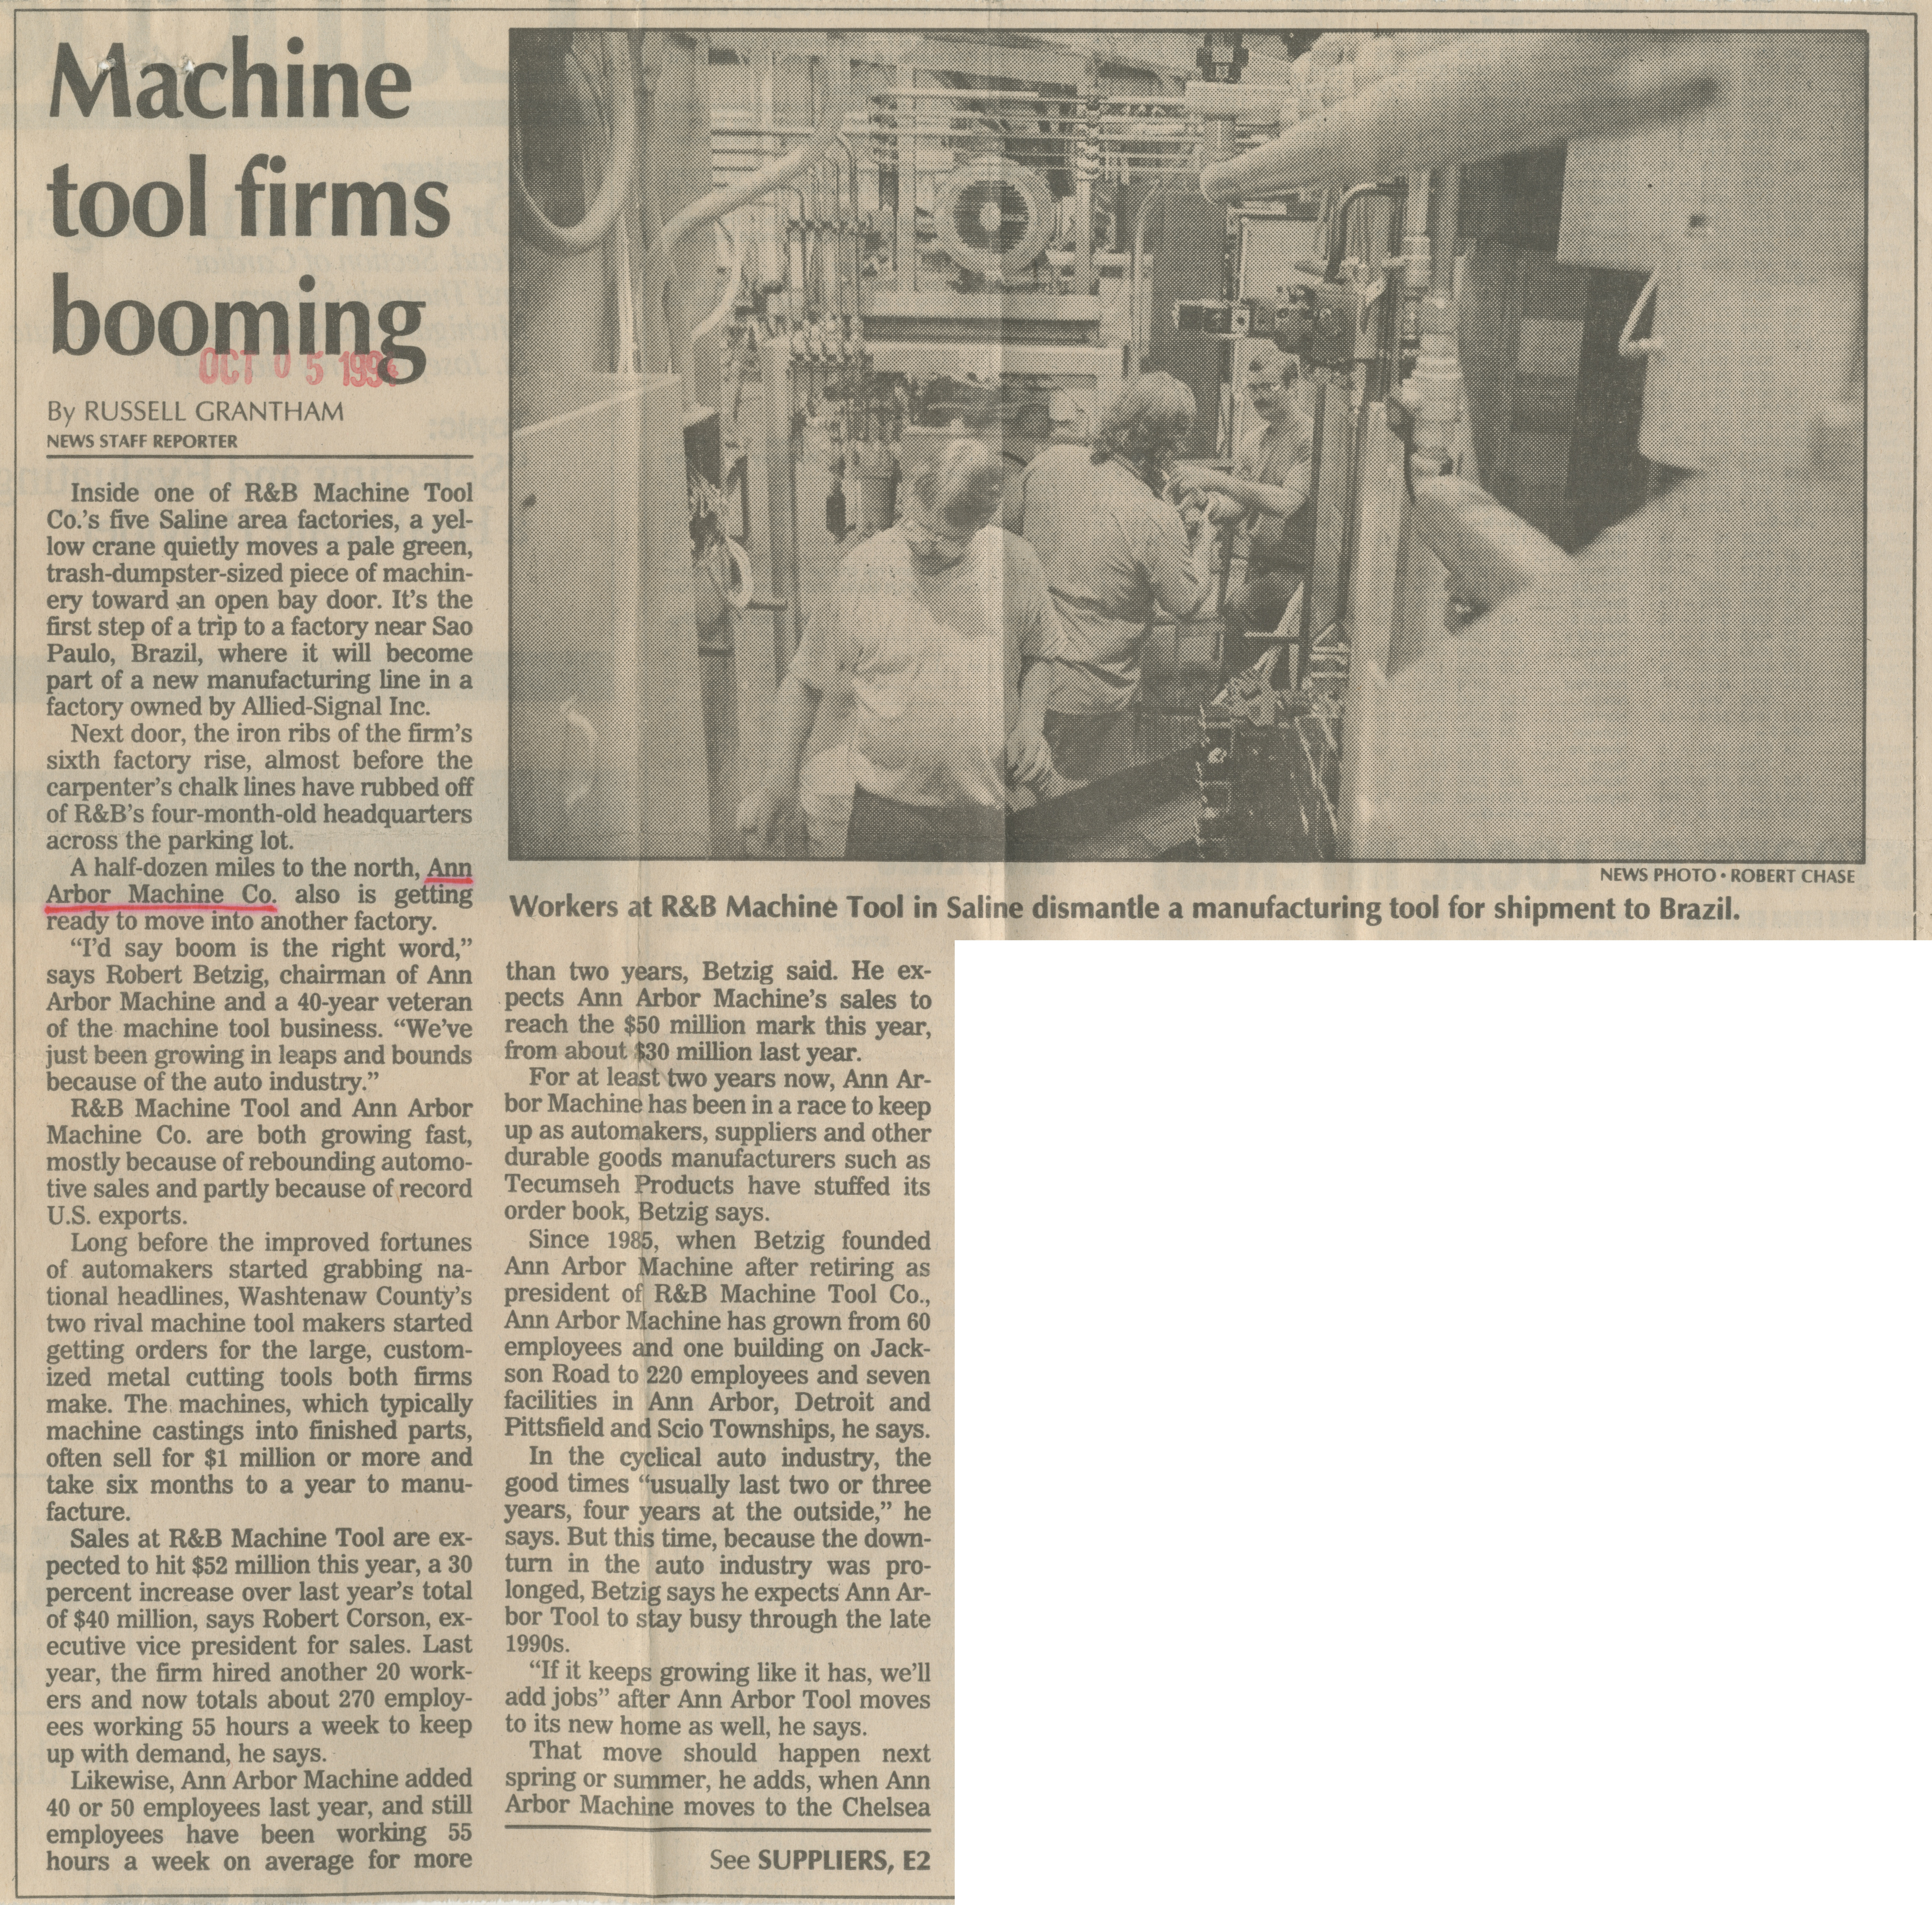 Machine tool firms booming image